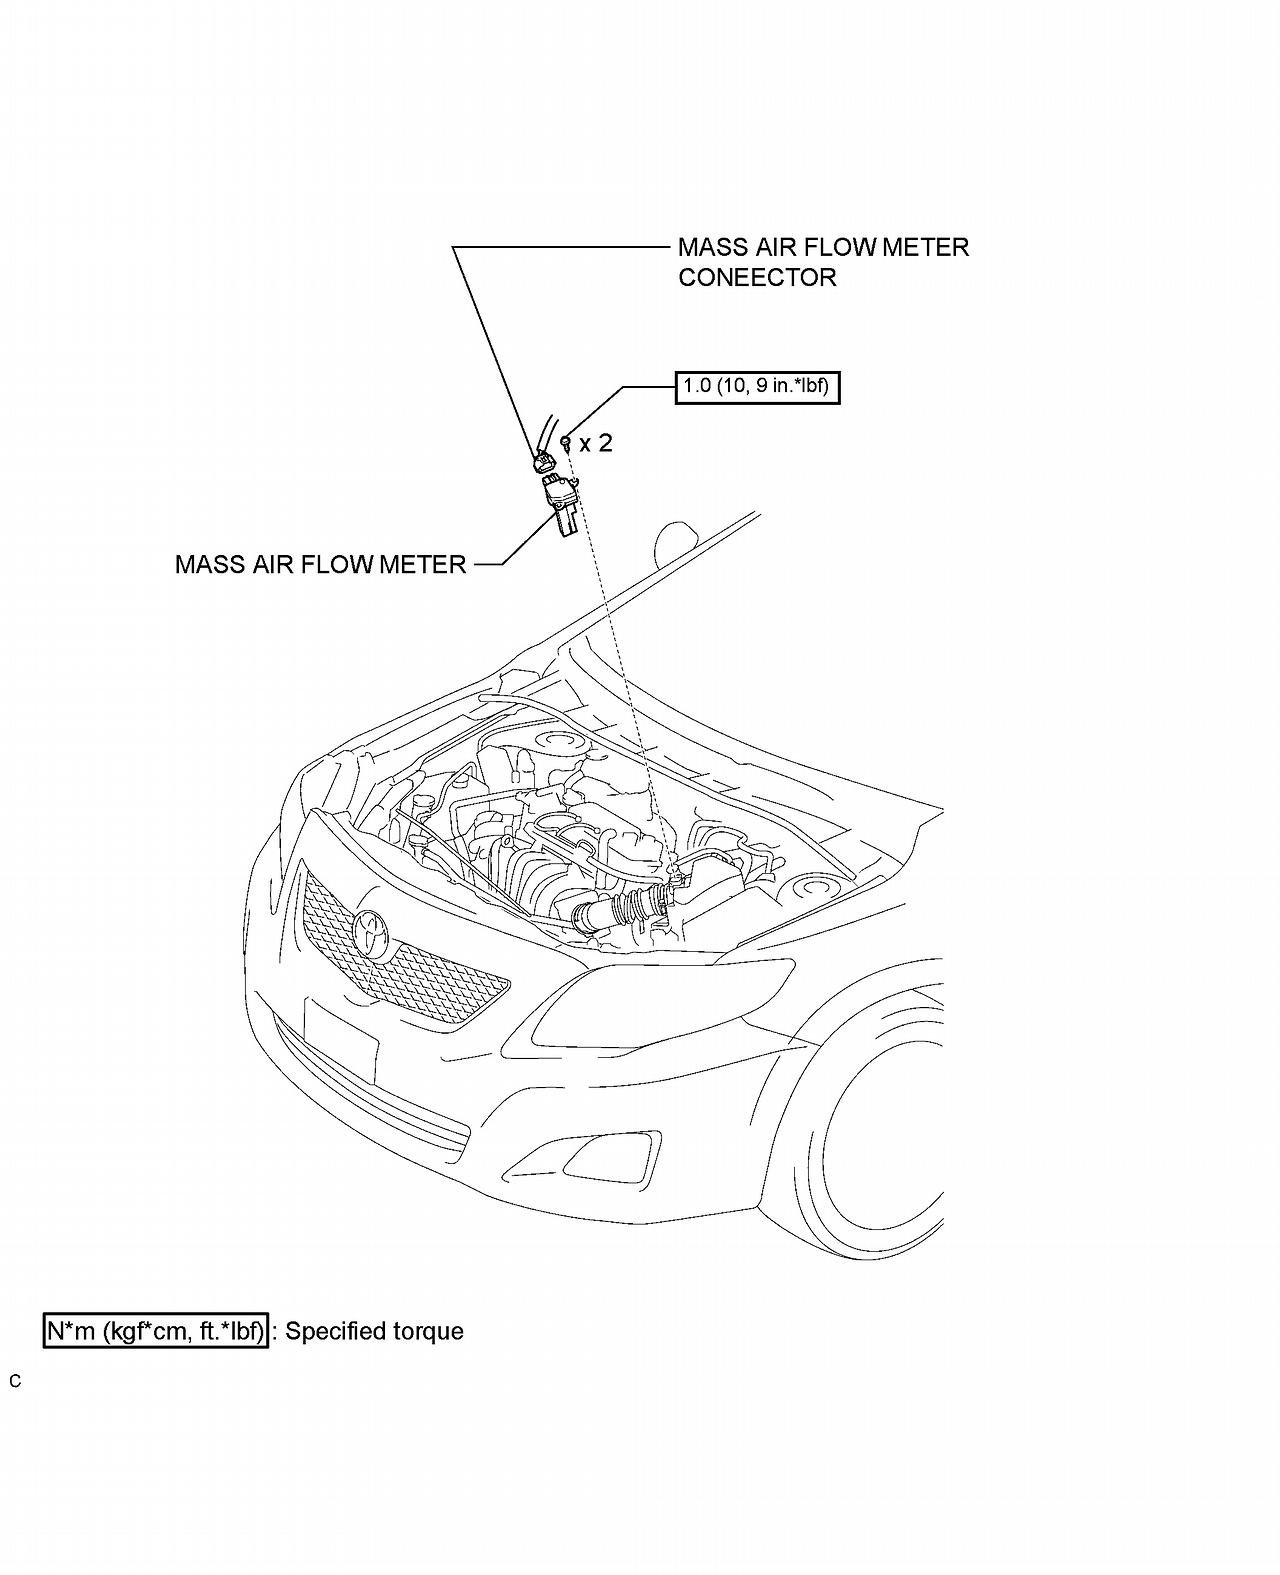 2010 toyota corolla le has codes p0101 p0171 idles a little rough on